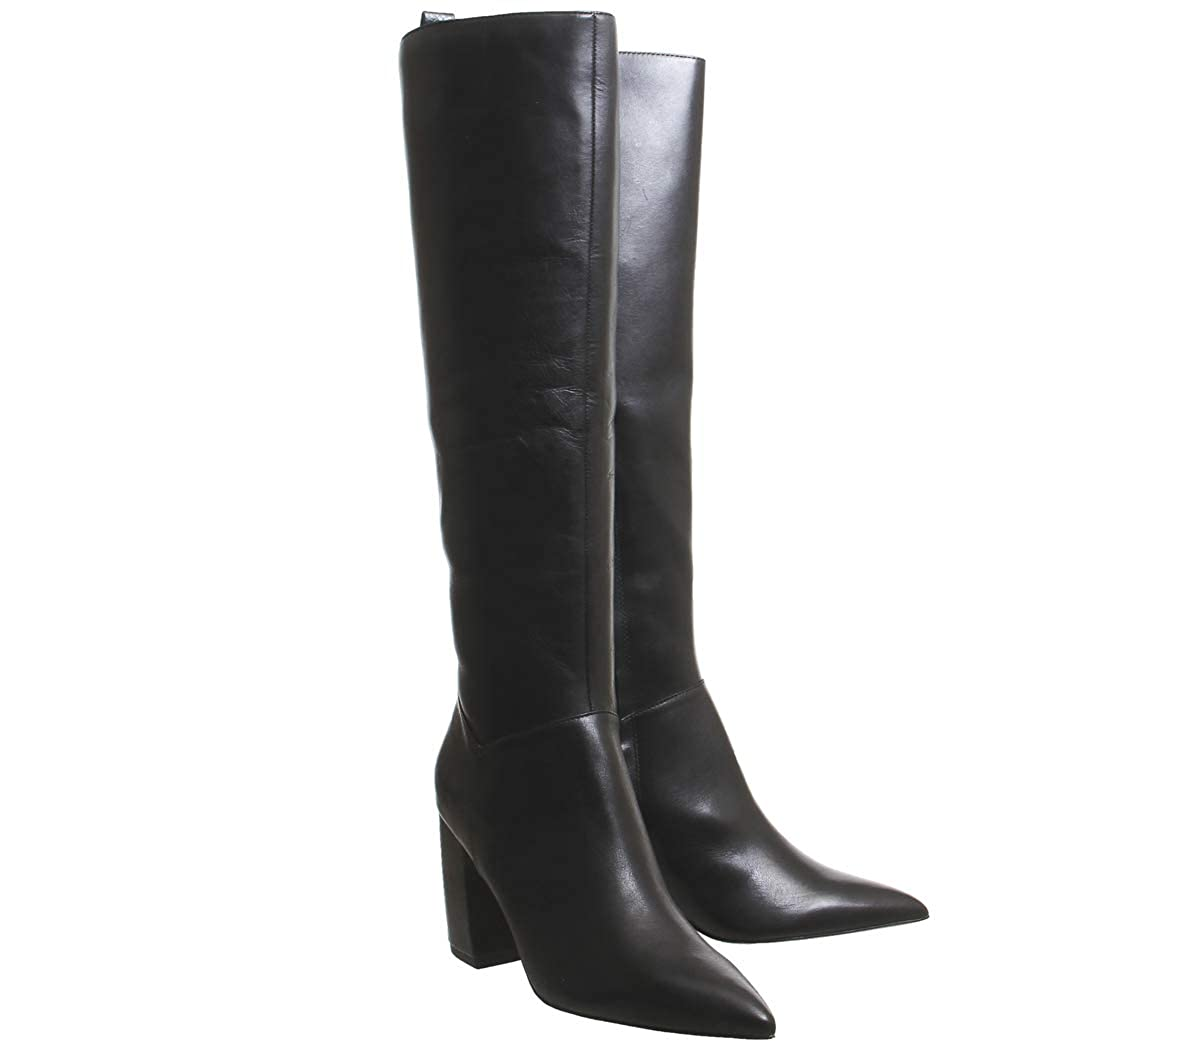 b72d0ca2 Office Kiki Pointed Block Heel Knee Boots: Amazon.co.uk: Shoes & Bags